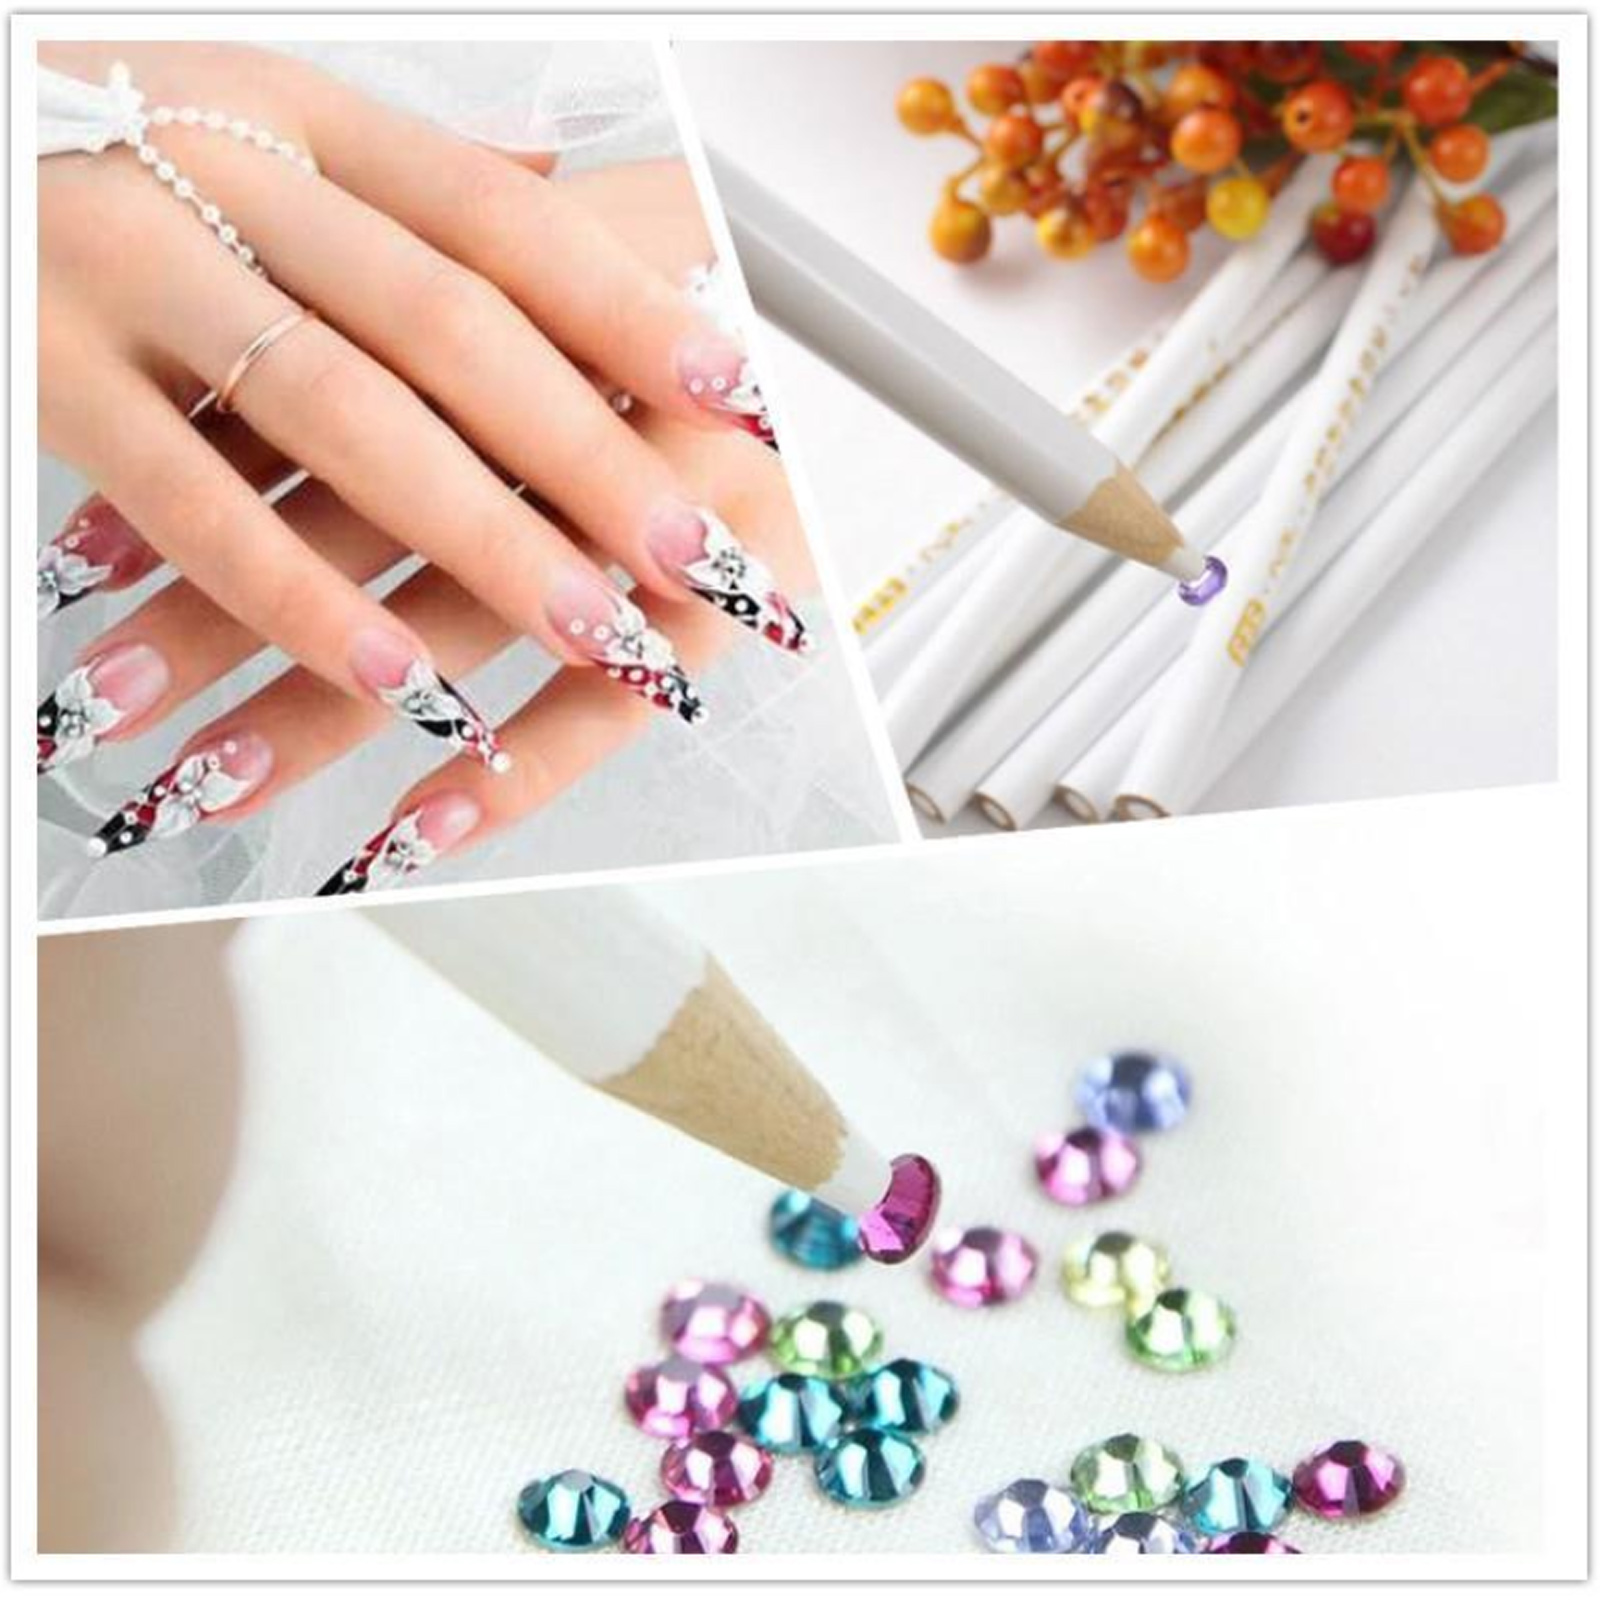 10PCs Gem Crystal Rhinestones Picker Pencil Nail Art Craft Tool Wax ...